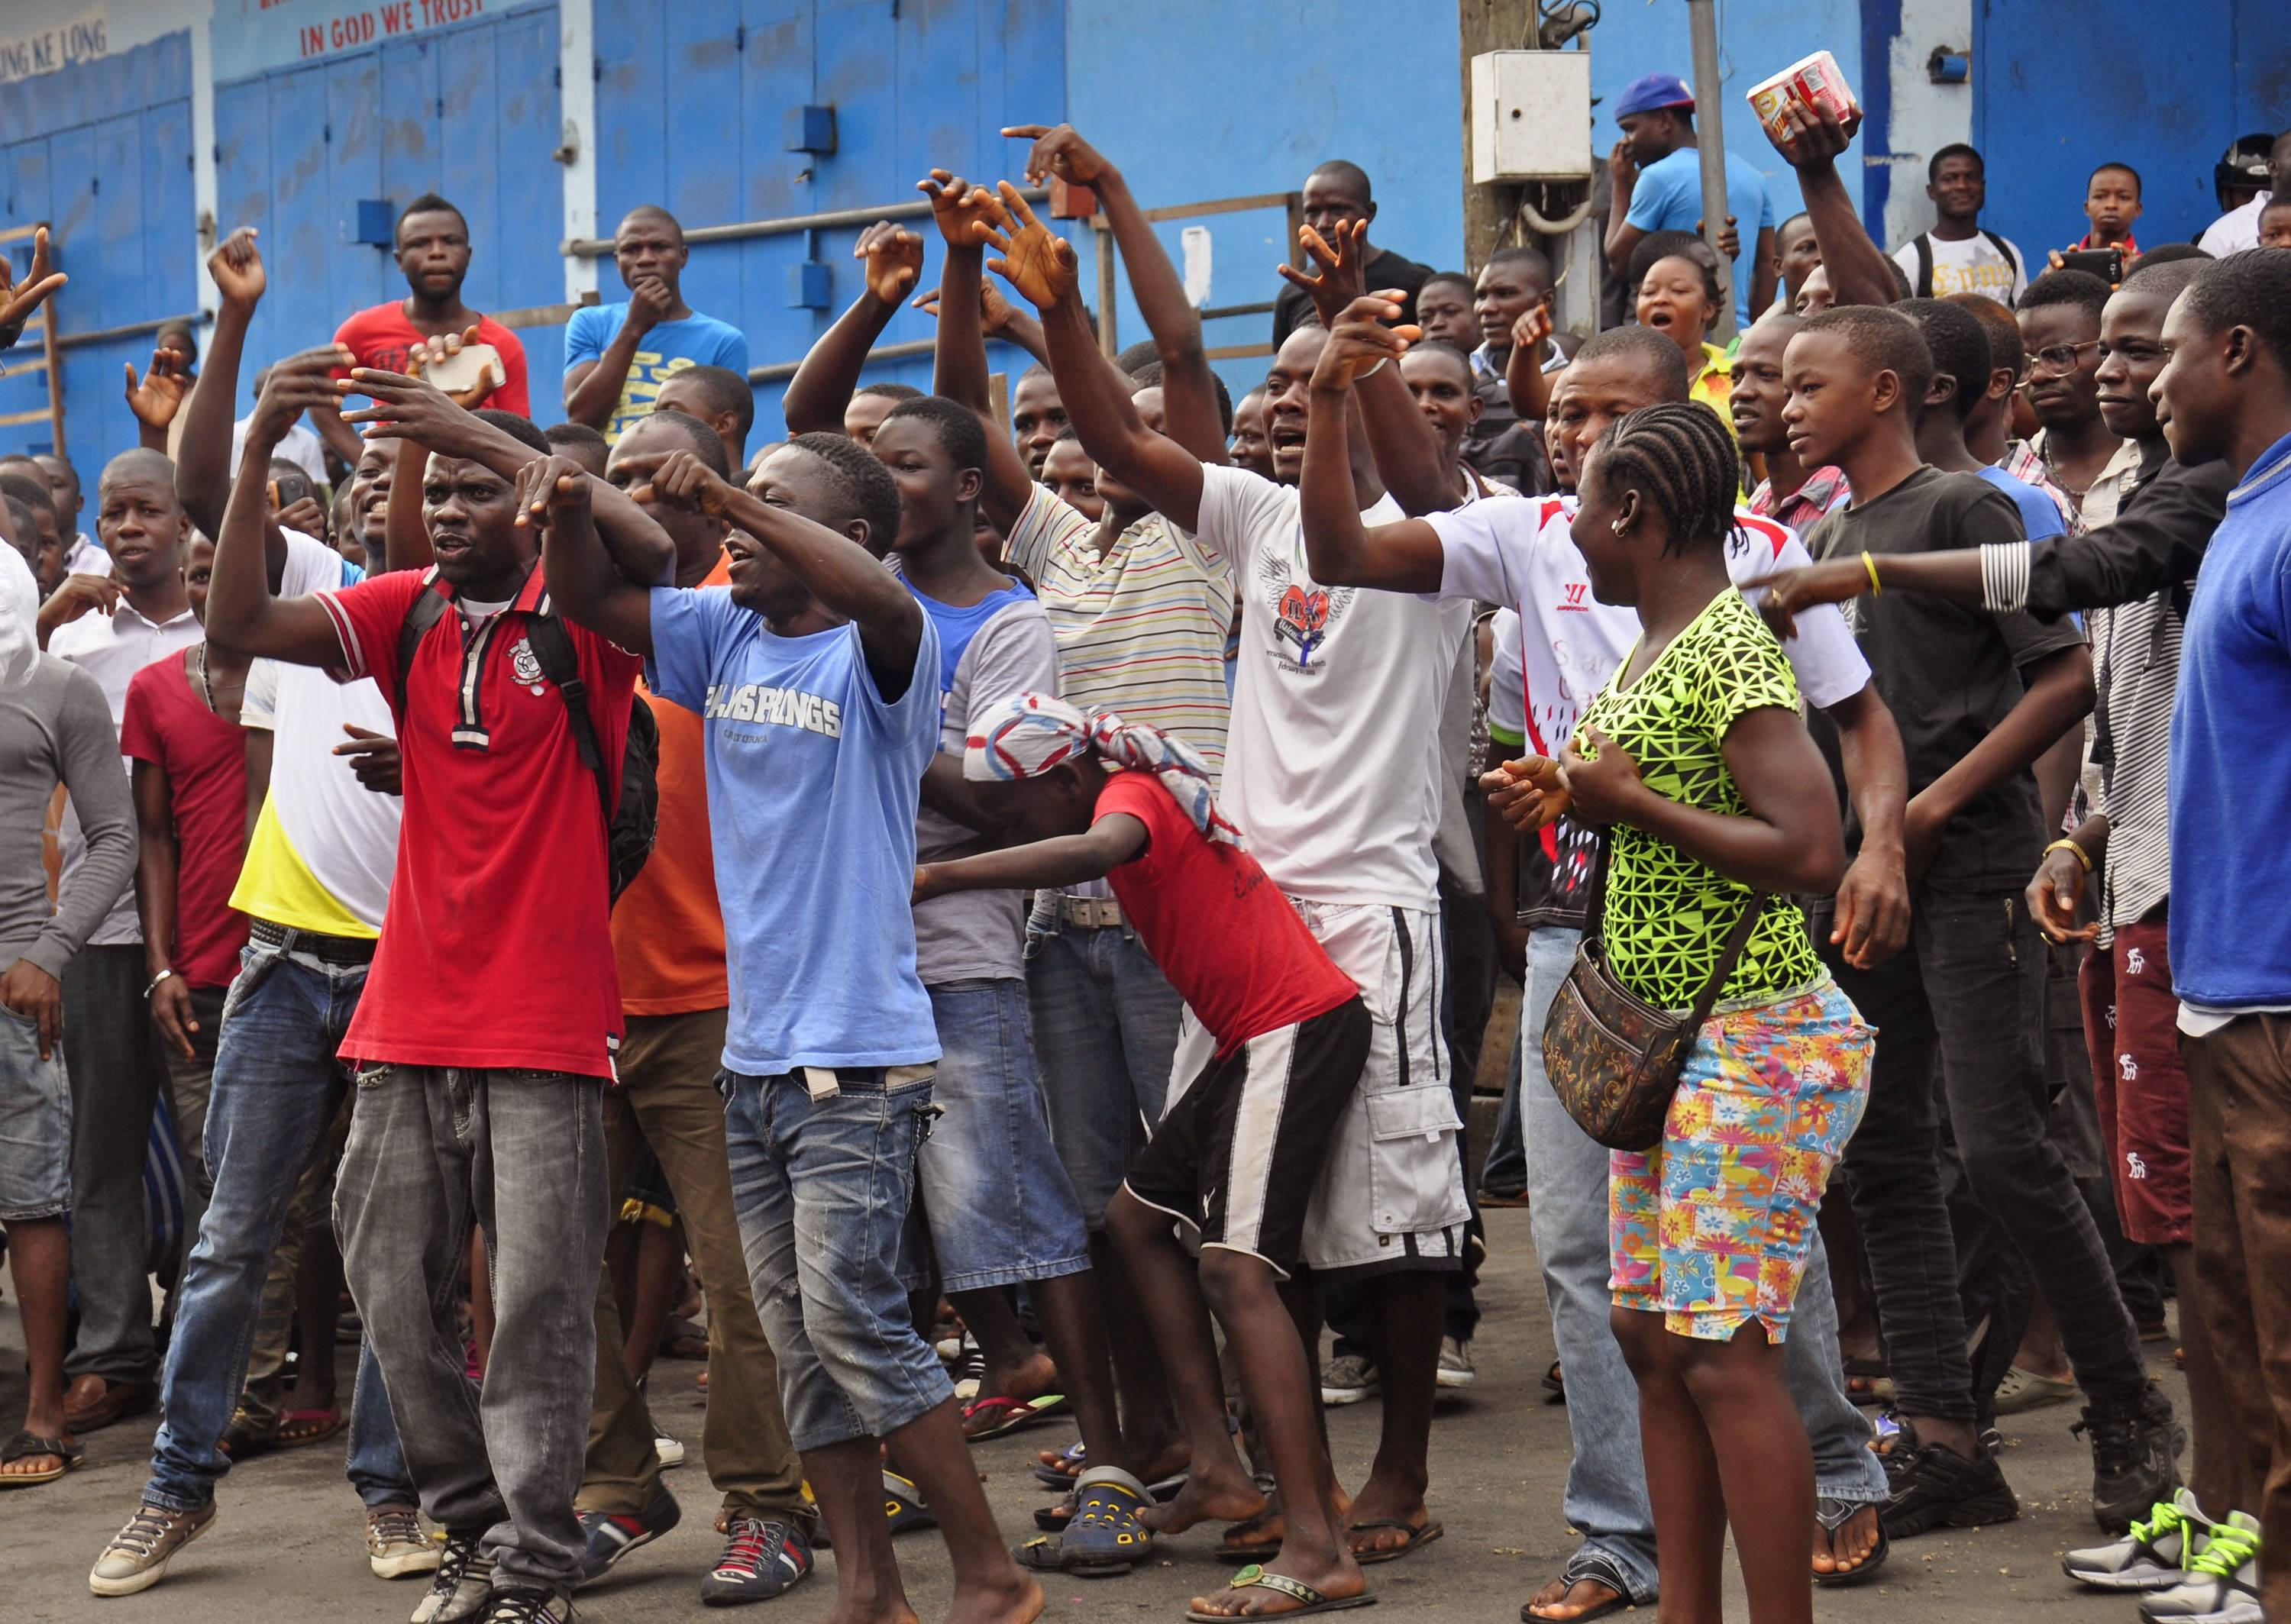 Residents protest not being allowed to enter the area leading to their homes. Security forces deployed Wednesday to enforce a quarantine around a slum in the Liberian capital, stepping up the government's fight to stop the spread of Ebola and unnerving residents.